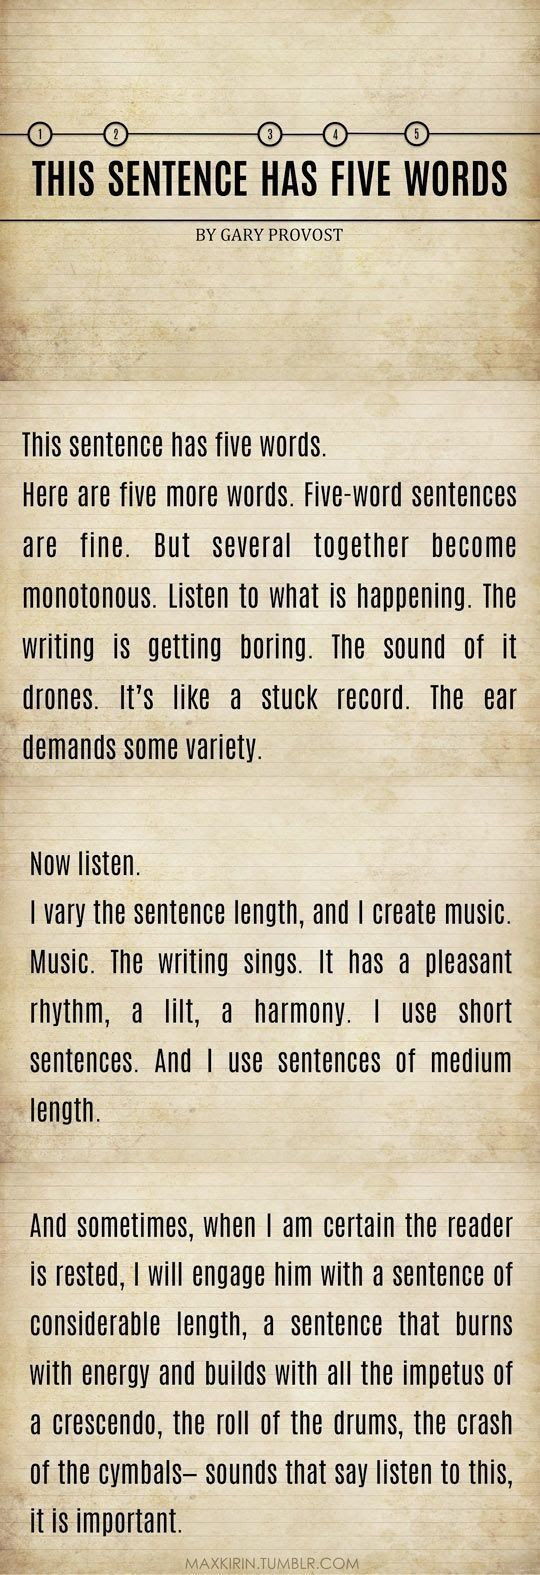 Thx4posting, marmouset.Writing tips by GaryProvost on Imgur